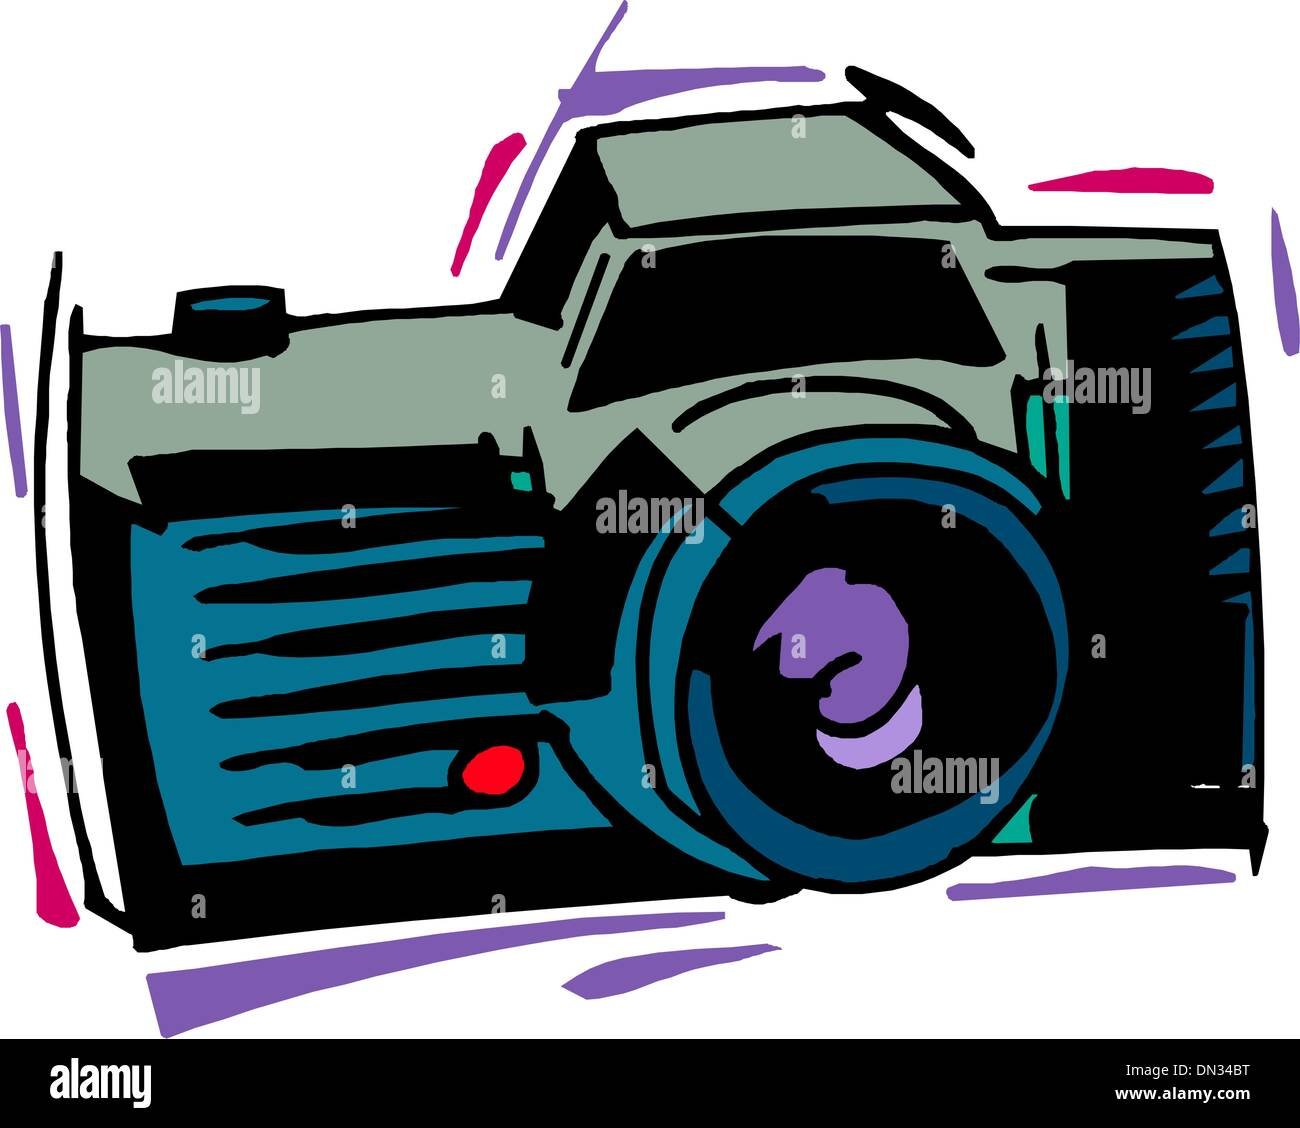 Professional slr camera - Stock Image